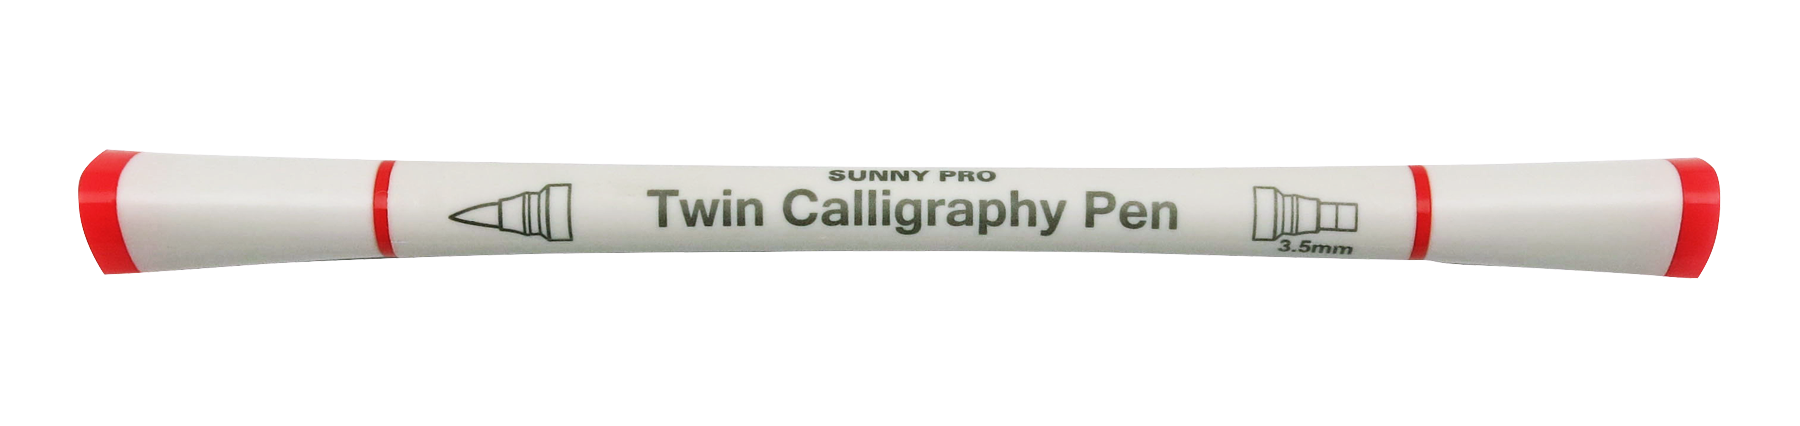 EM6683 Two ends Calligraphy Pen